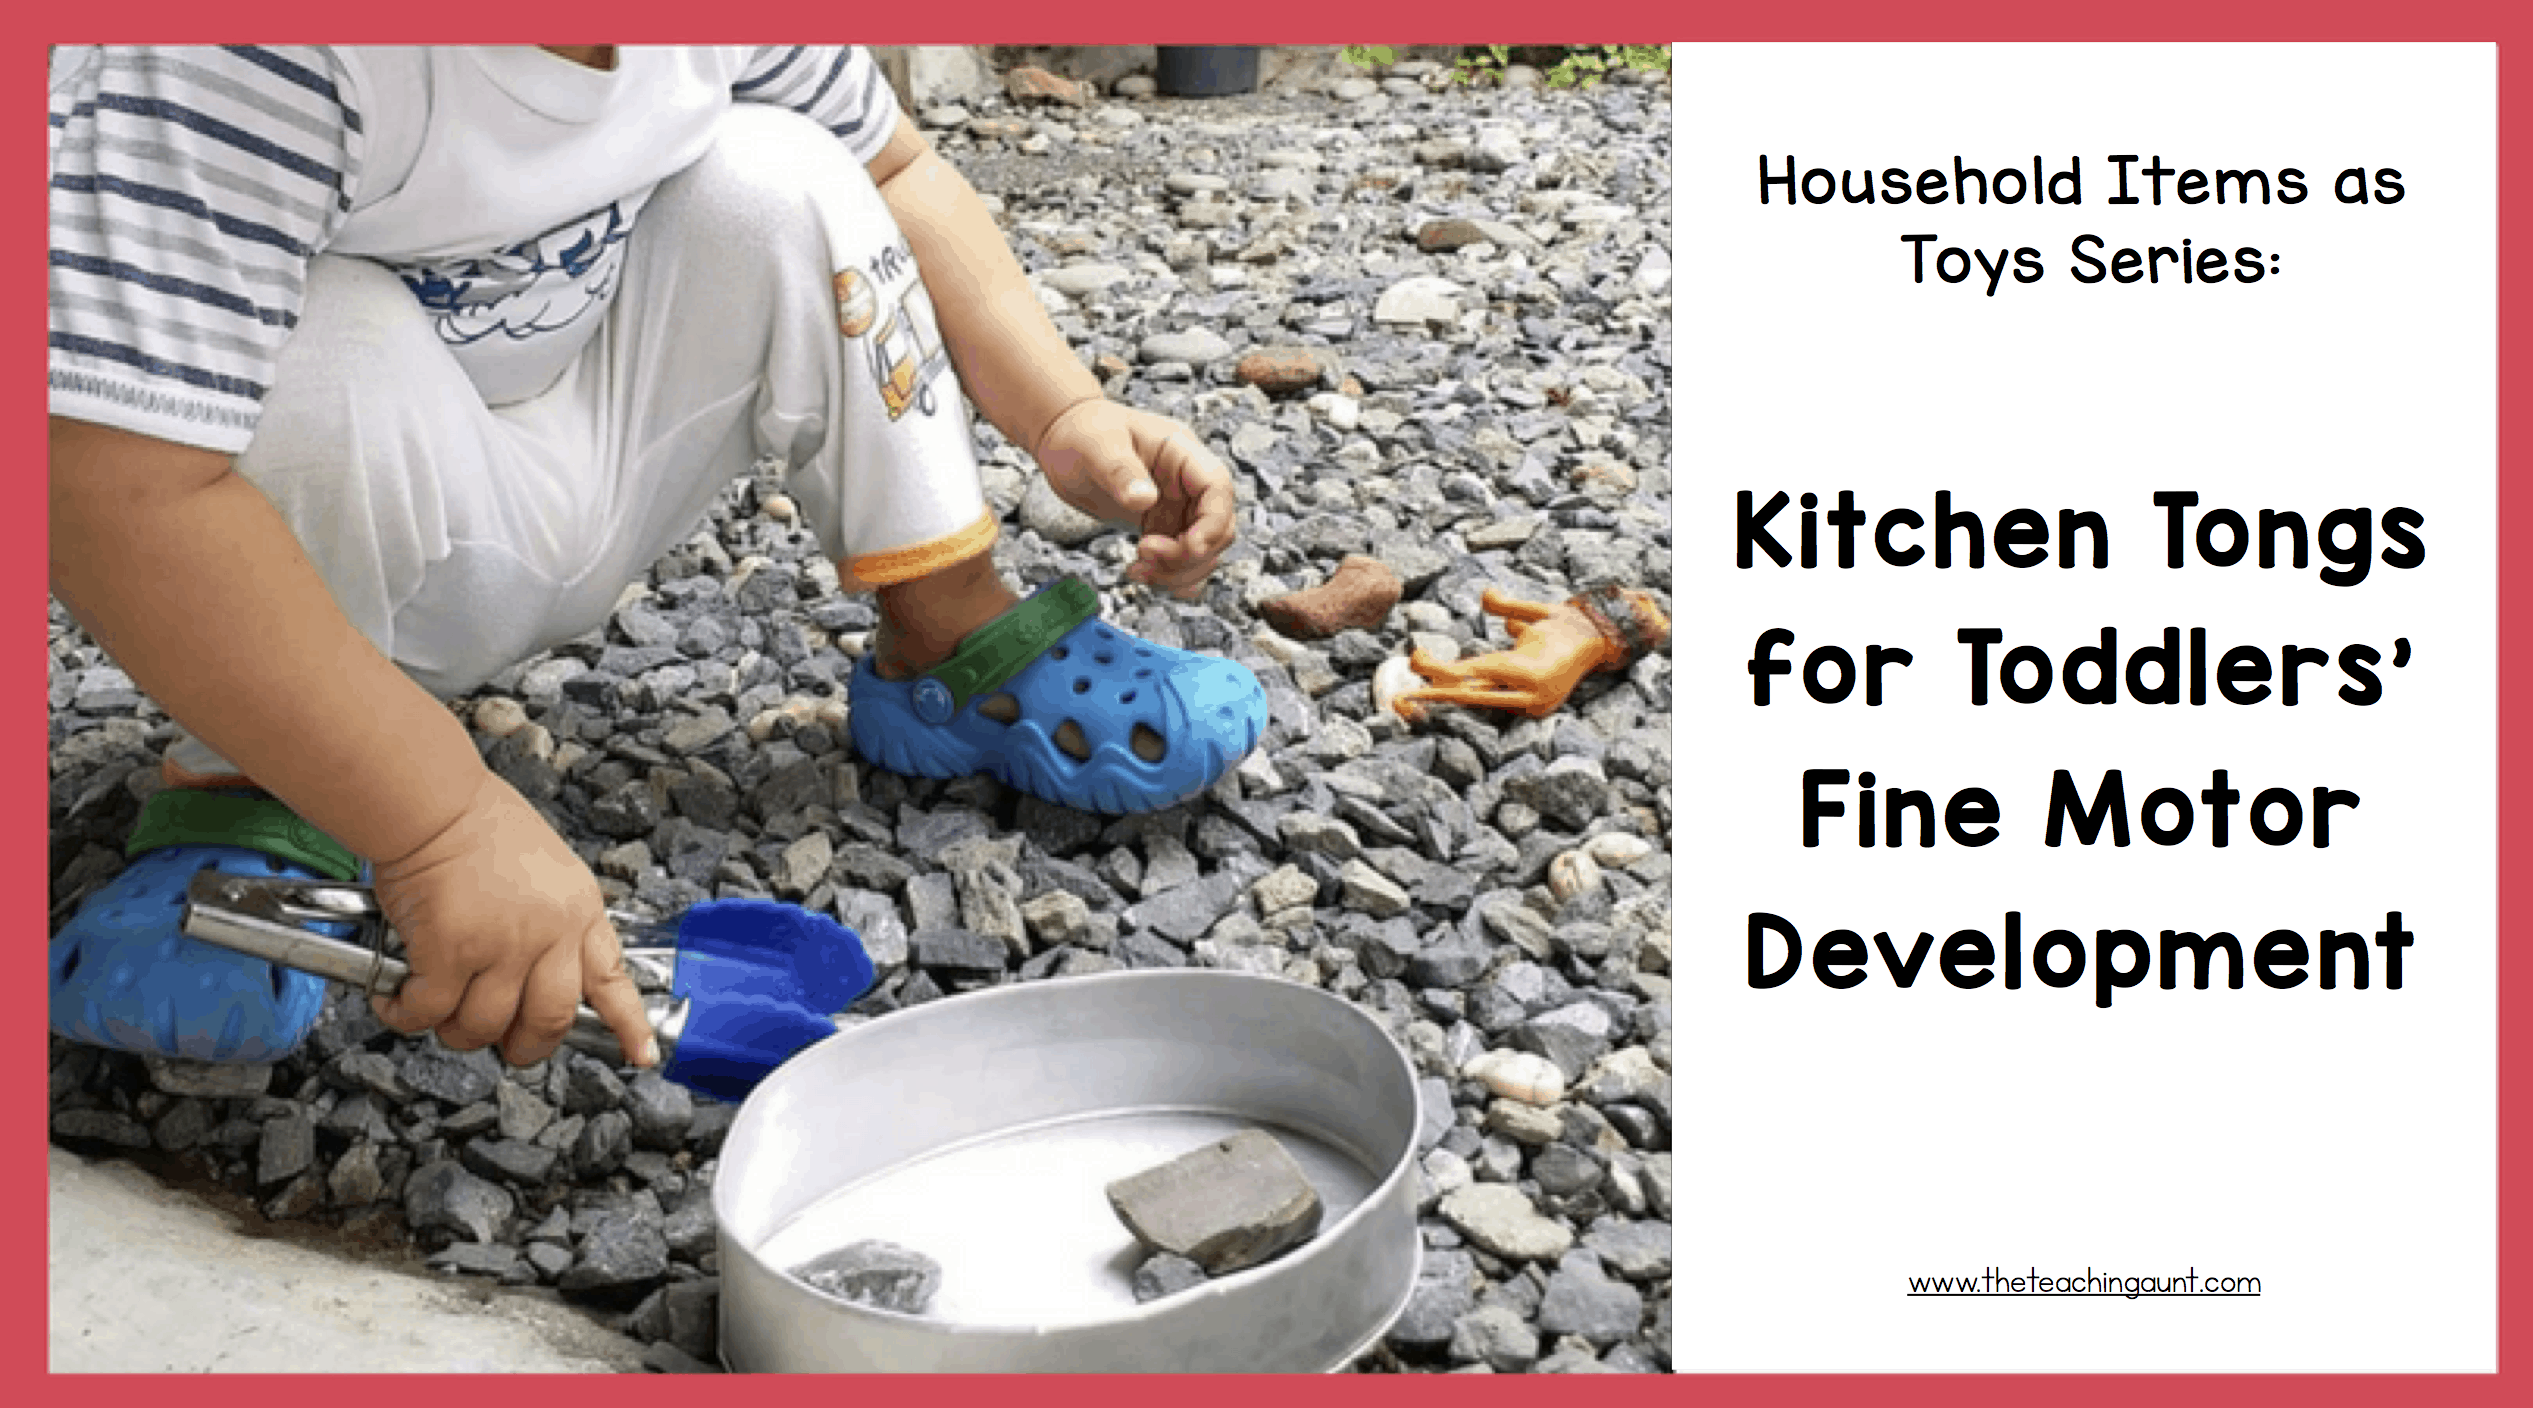 Kitchen Tongs for Toddlers: Household Items as Toys Series